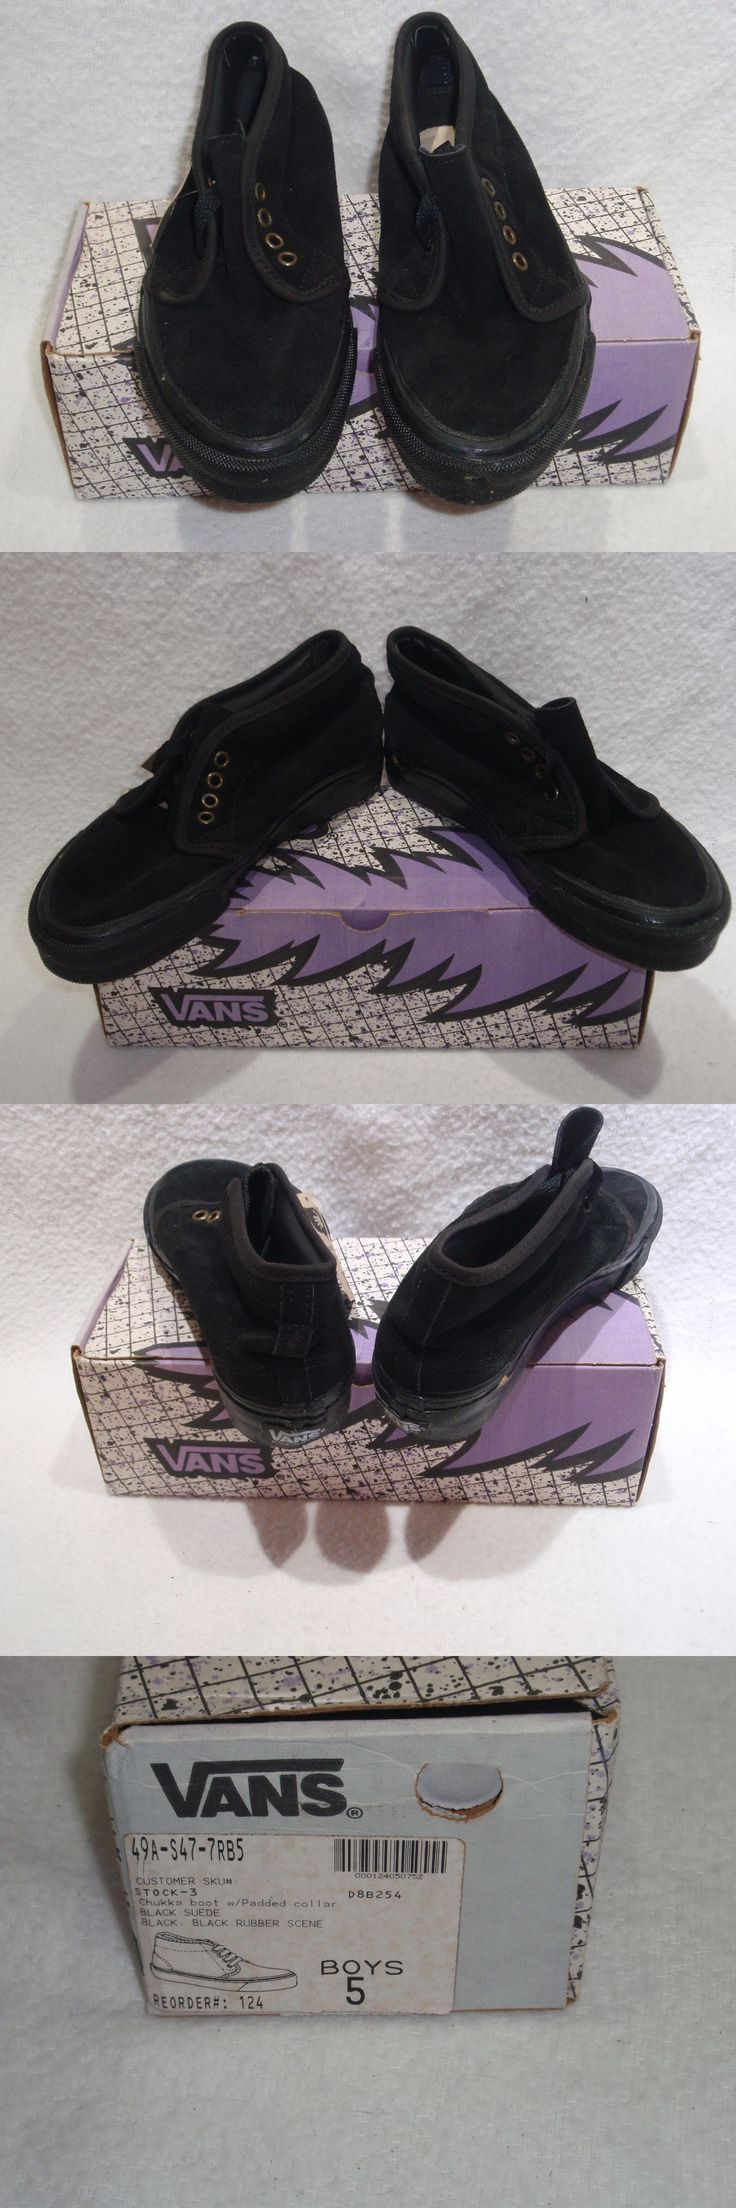 Youth 159072: Nos Vintage 1990 Vans Chukka Boot Black Suede Boys 5 Sk8 Skateboard Bmx Shoes -> BUY IT NOW ONLY: $32.99 on eBay!